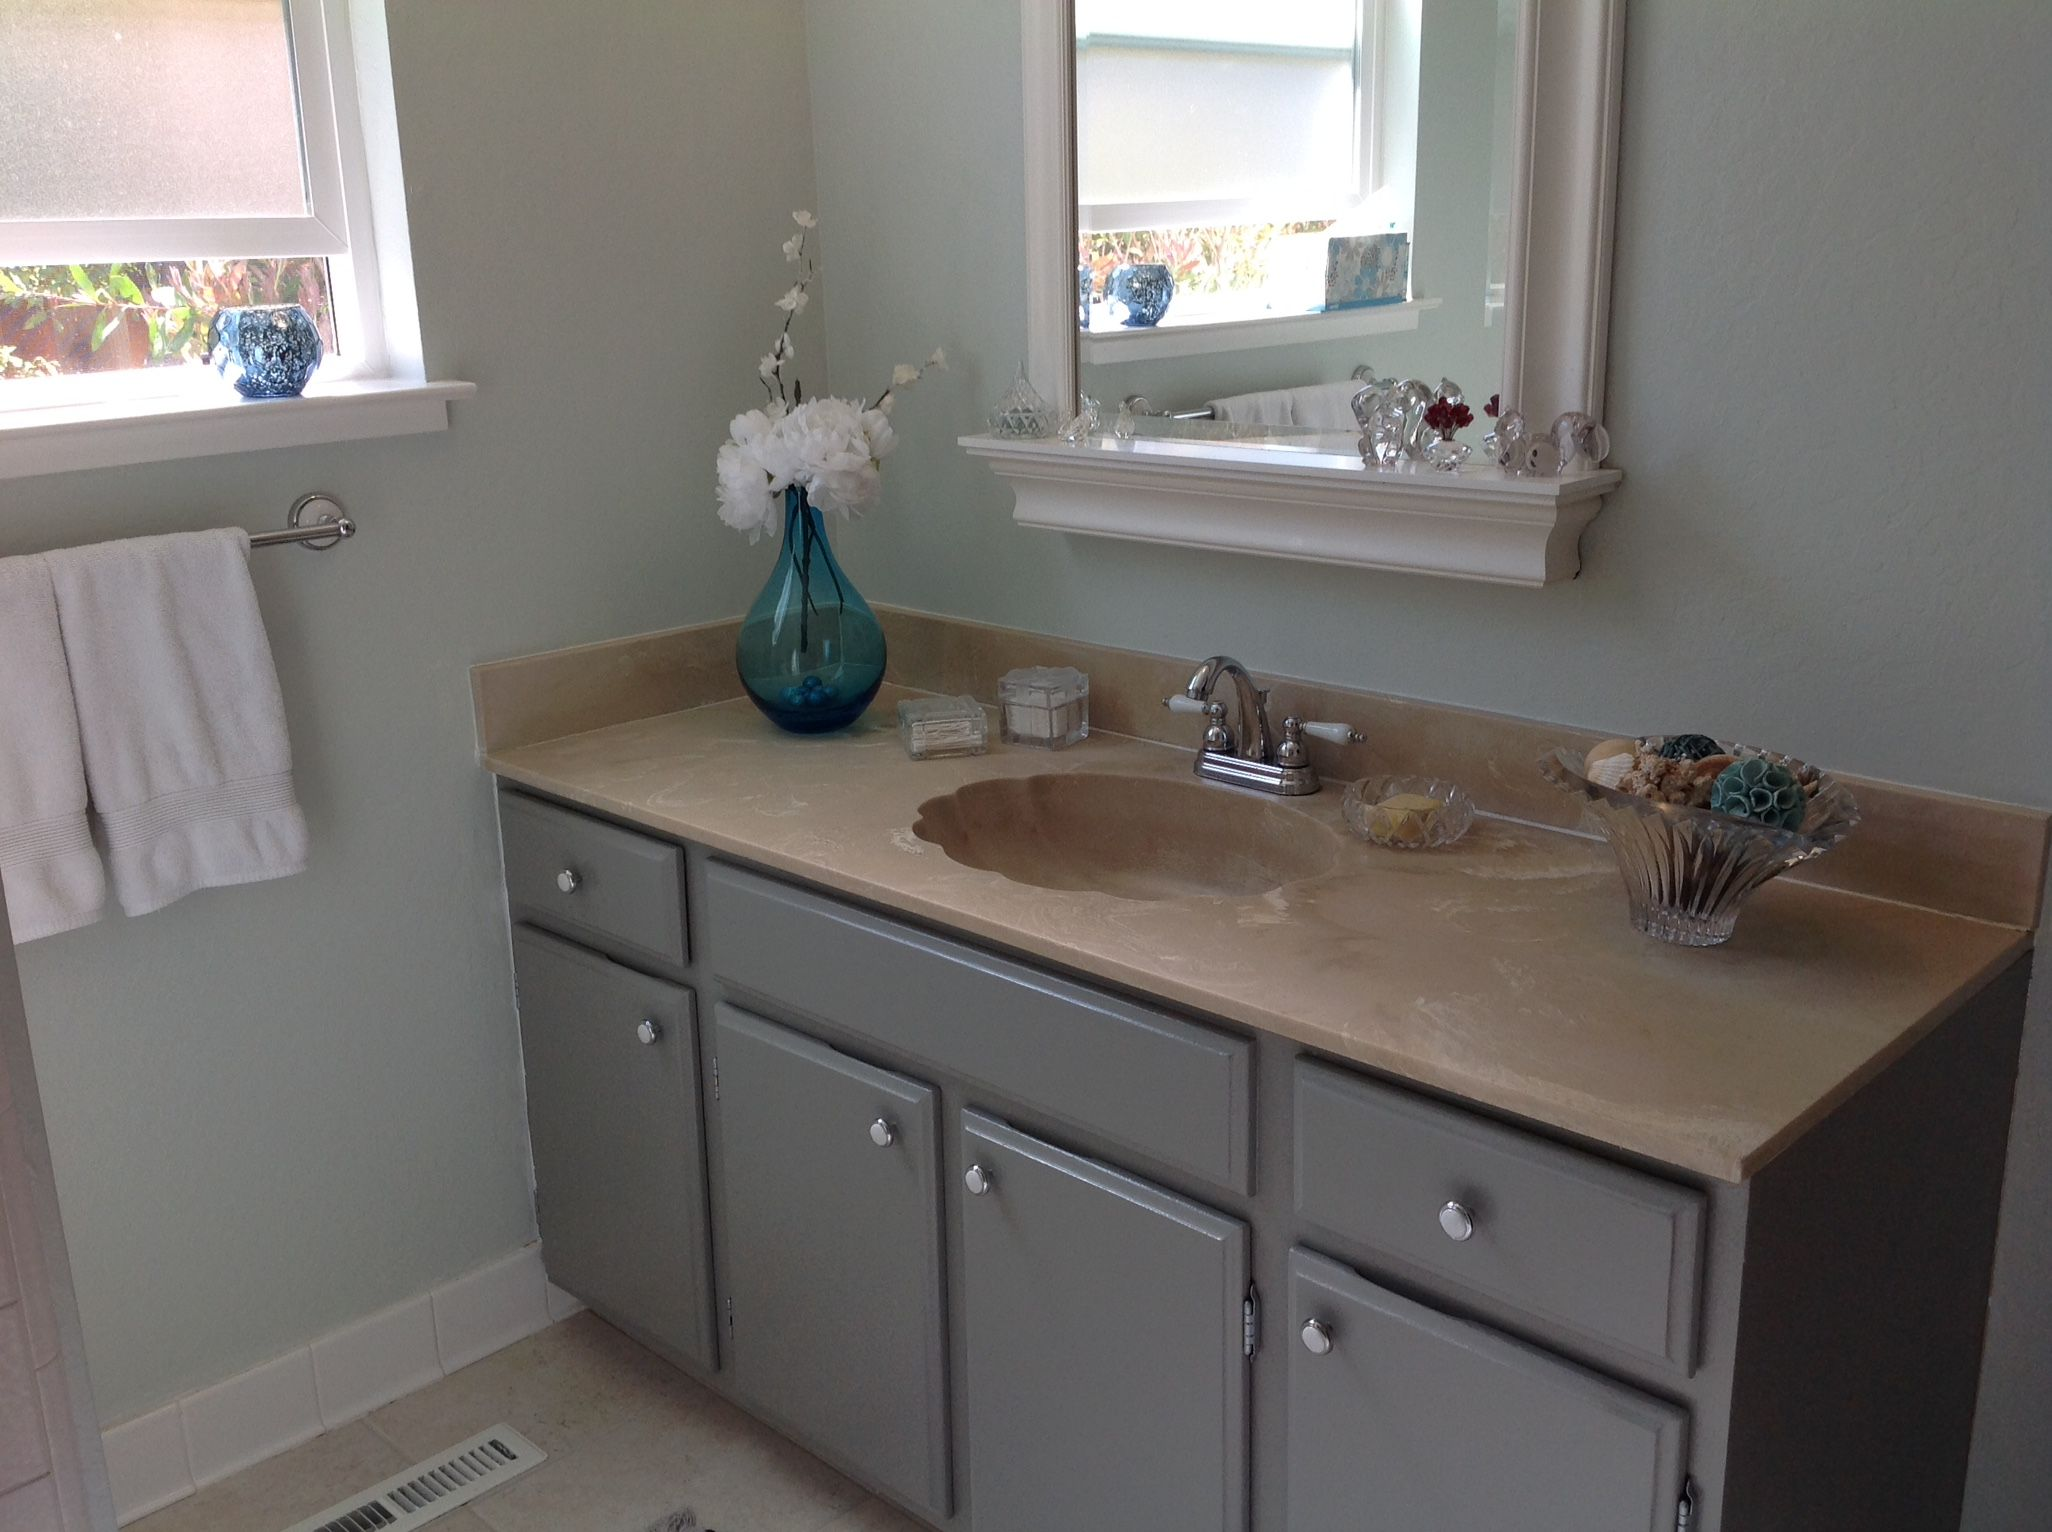 1974 Built In Cabinets Updated With Valspar Tabby Cat Gray The Wall Painted In Benjamin Moore H Valspar Paint Colors Gray Valspar Paint Colors Update Cabinets